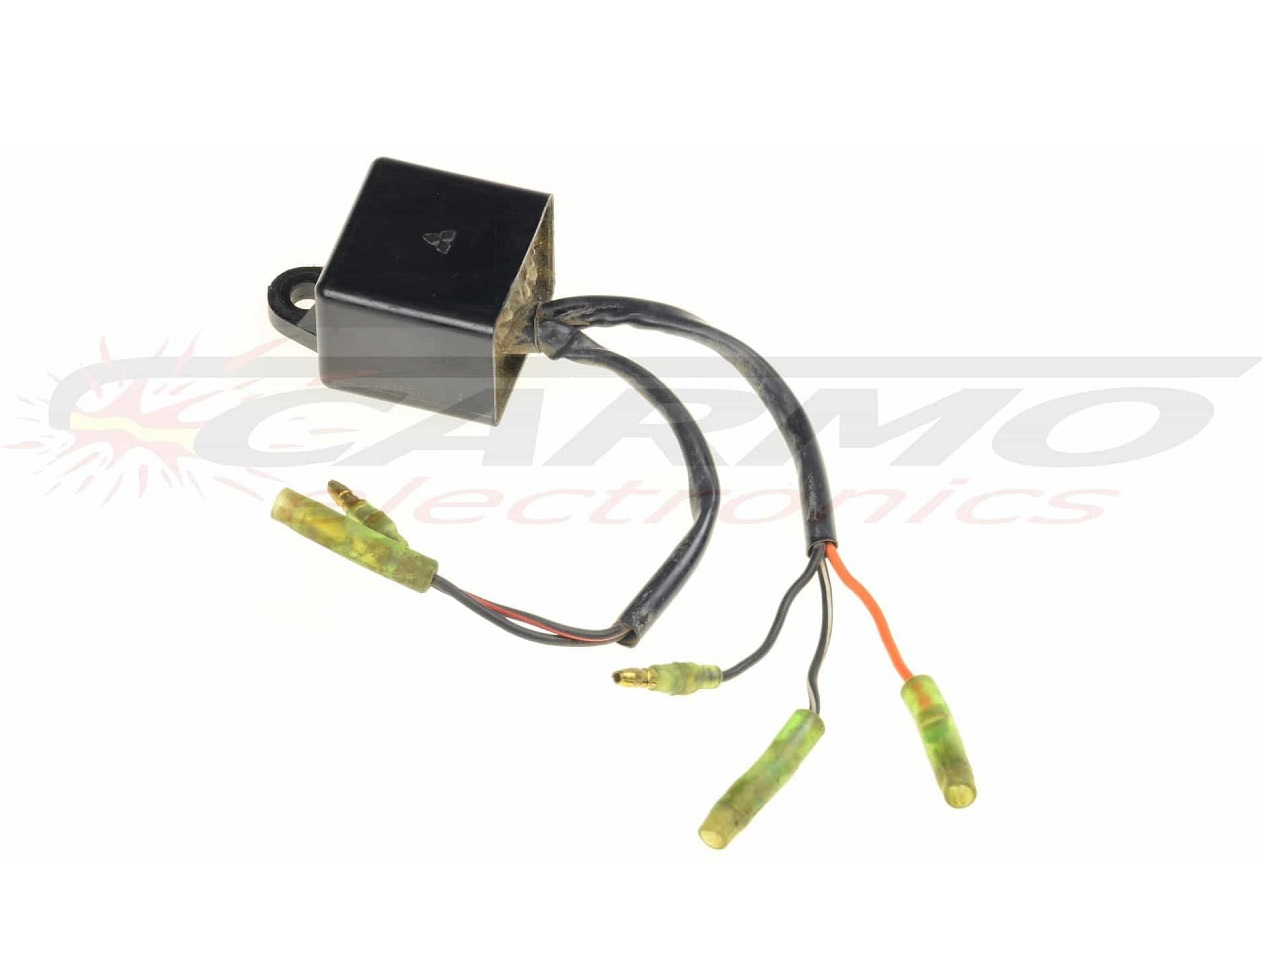 Yamaha Carmo Electronics The Place For Parts Or Circuit Diagram Of Xt225d Us Model Pw80 Igniter Ignition Module Cdi Tci Box 21w 20